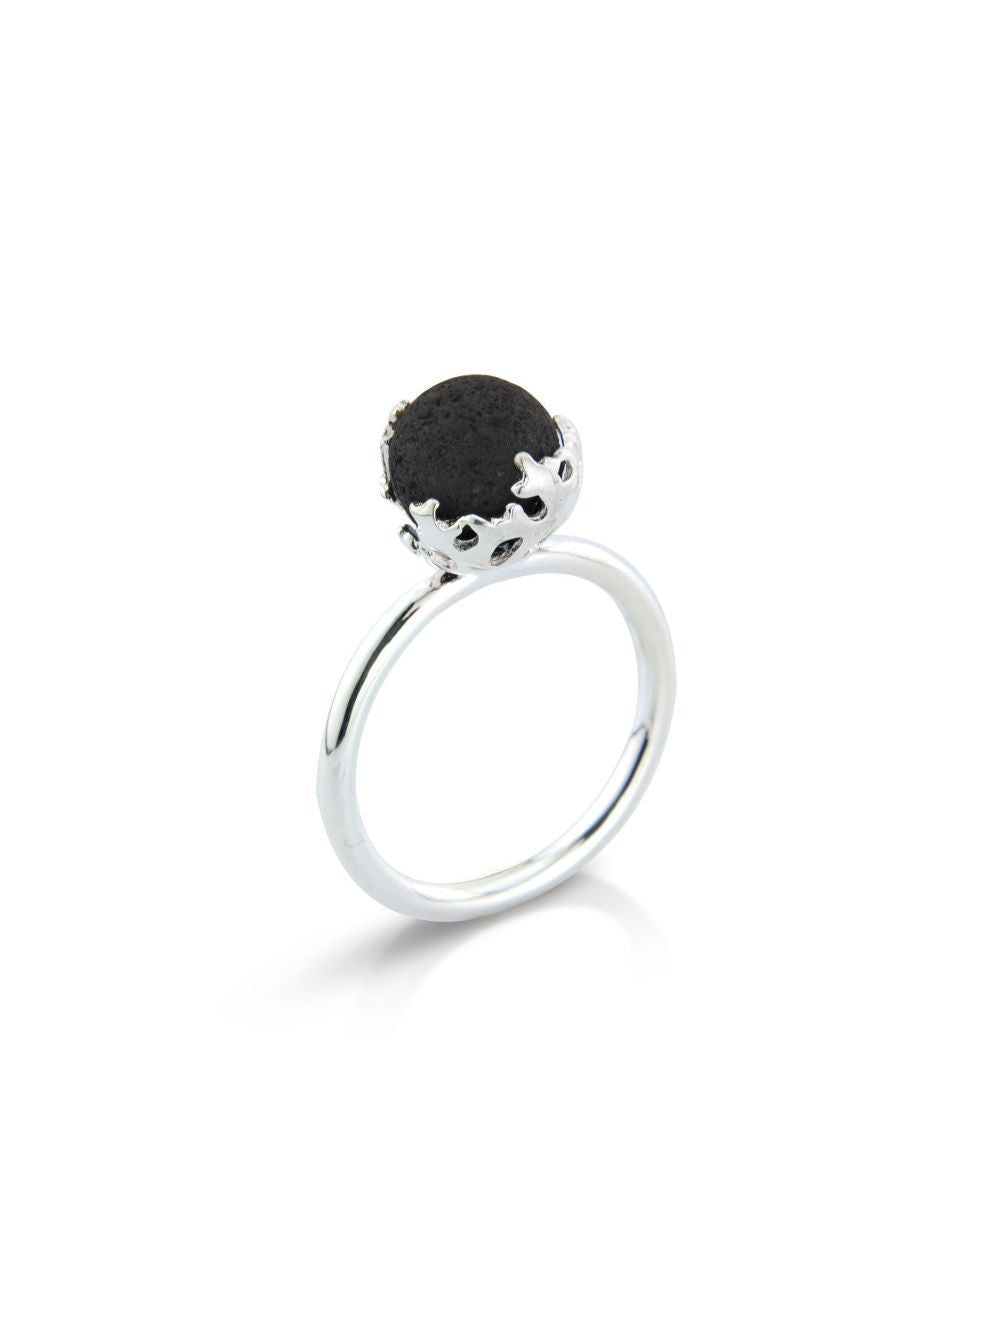 Lava Stone Silver Ring - Earth Inspired Jewellery Style